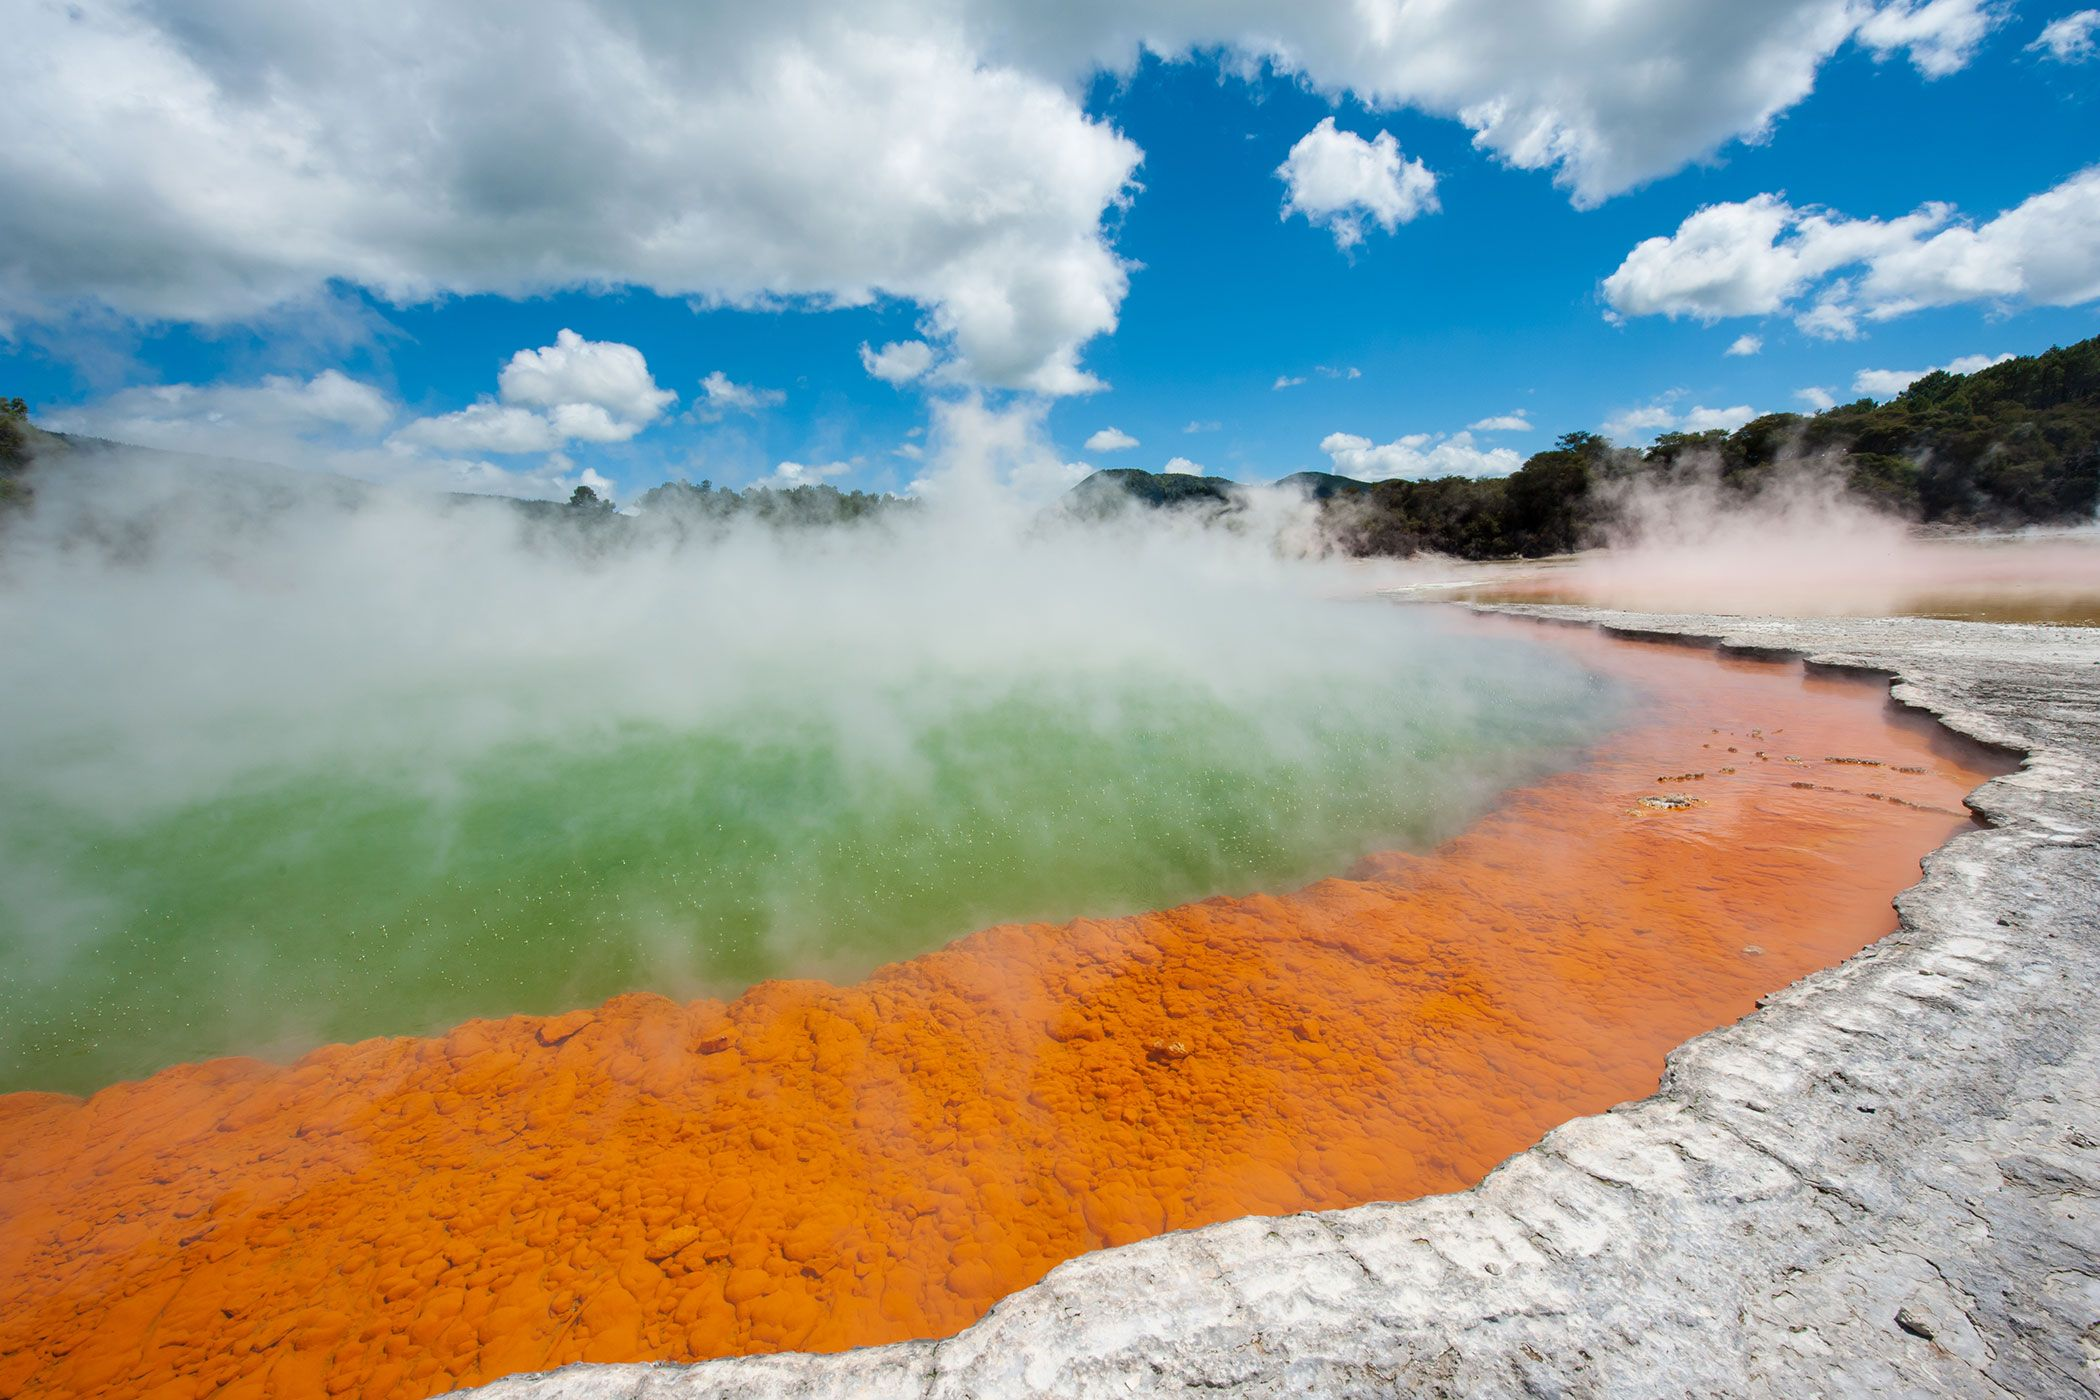 Out Of This World The Most Surreal Landscapes On The Planet - 25 amazing landscapes around world seen